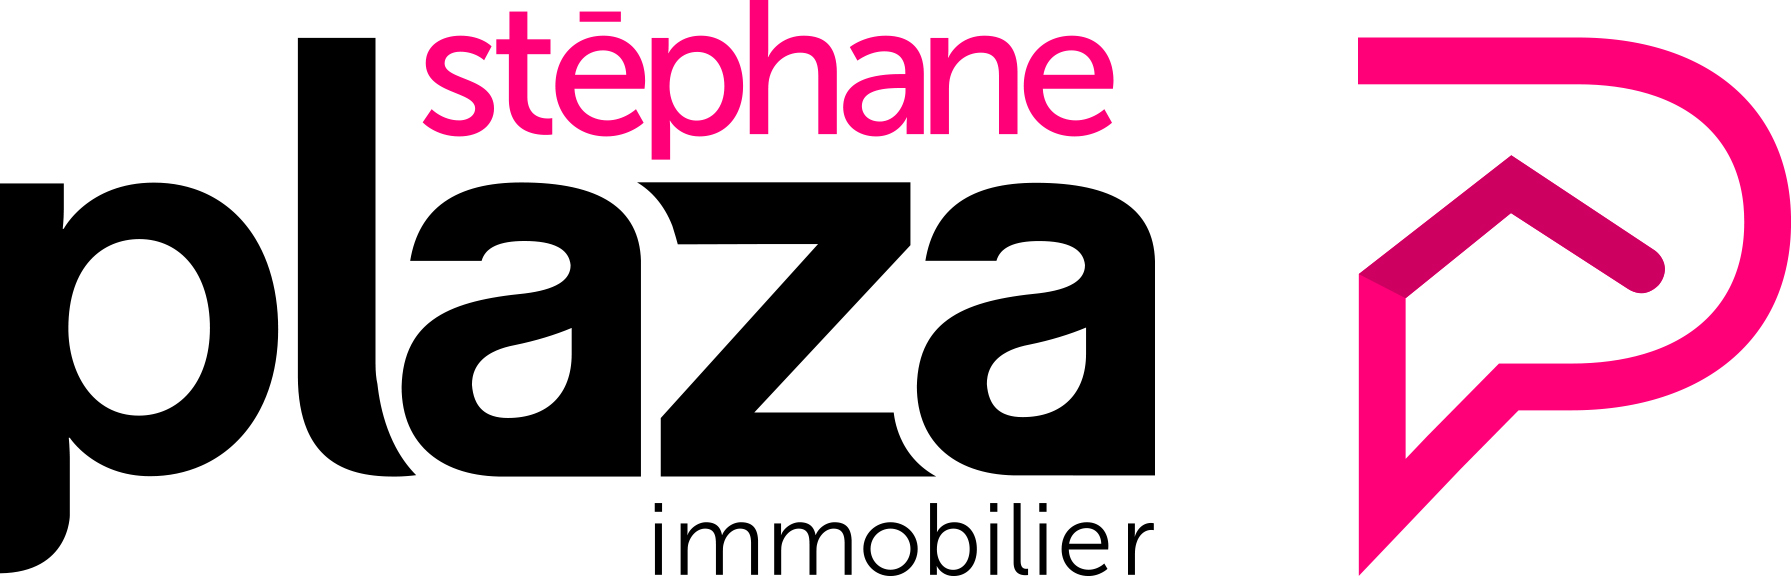 intro stephaneplazaimmobilier